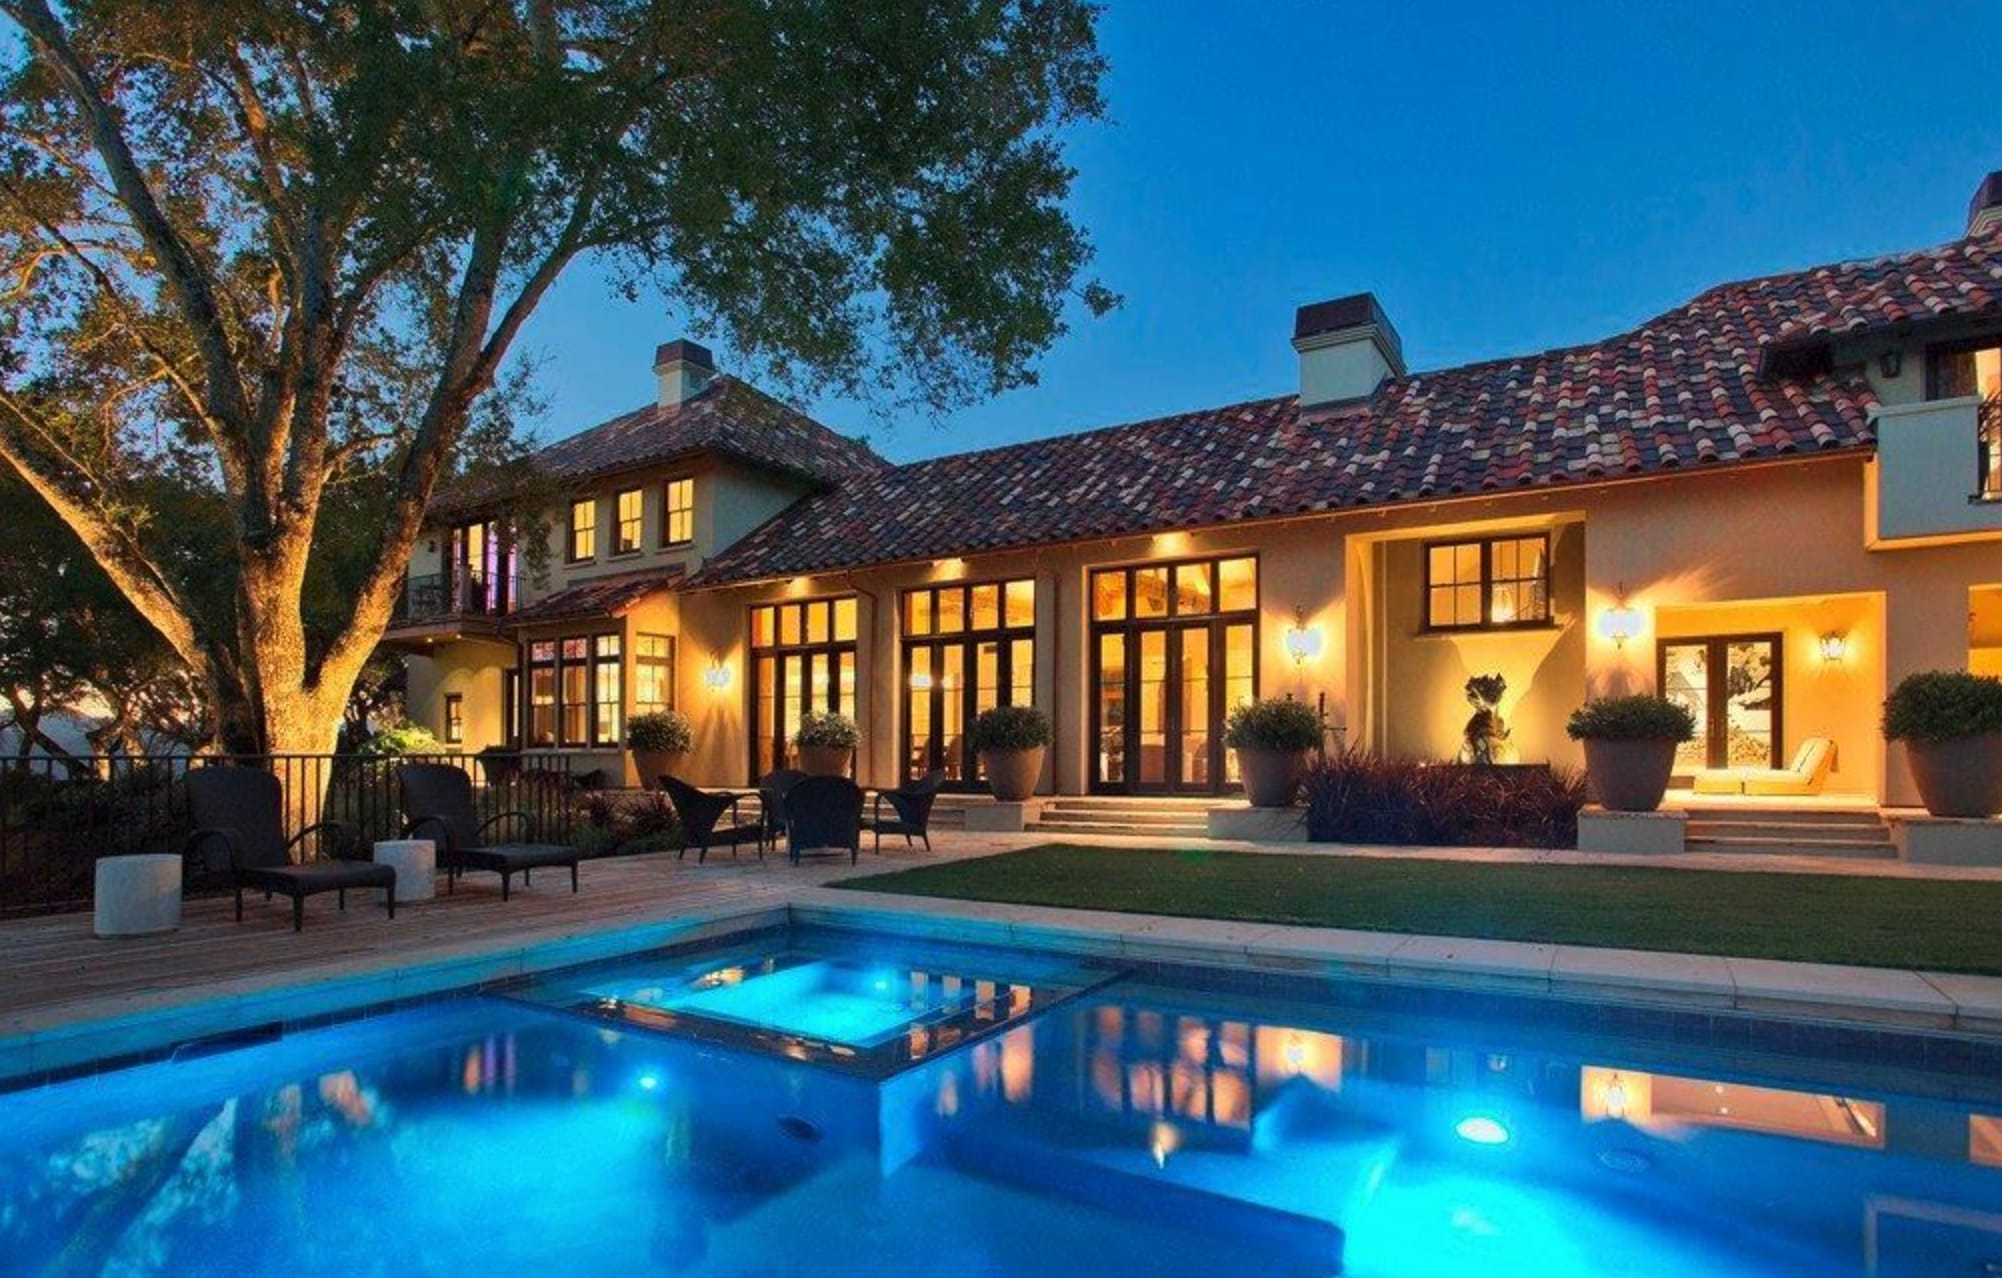 Most Expensive Property Sold in Healdsburg 2020